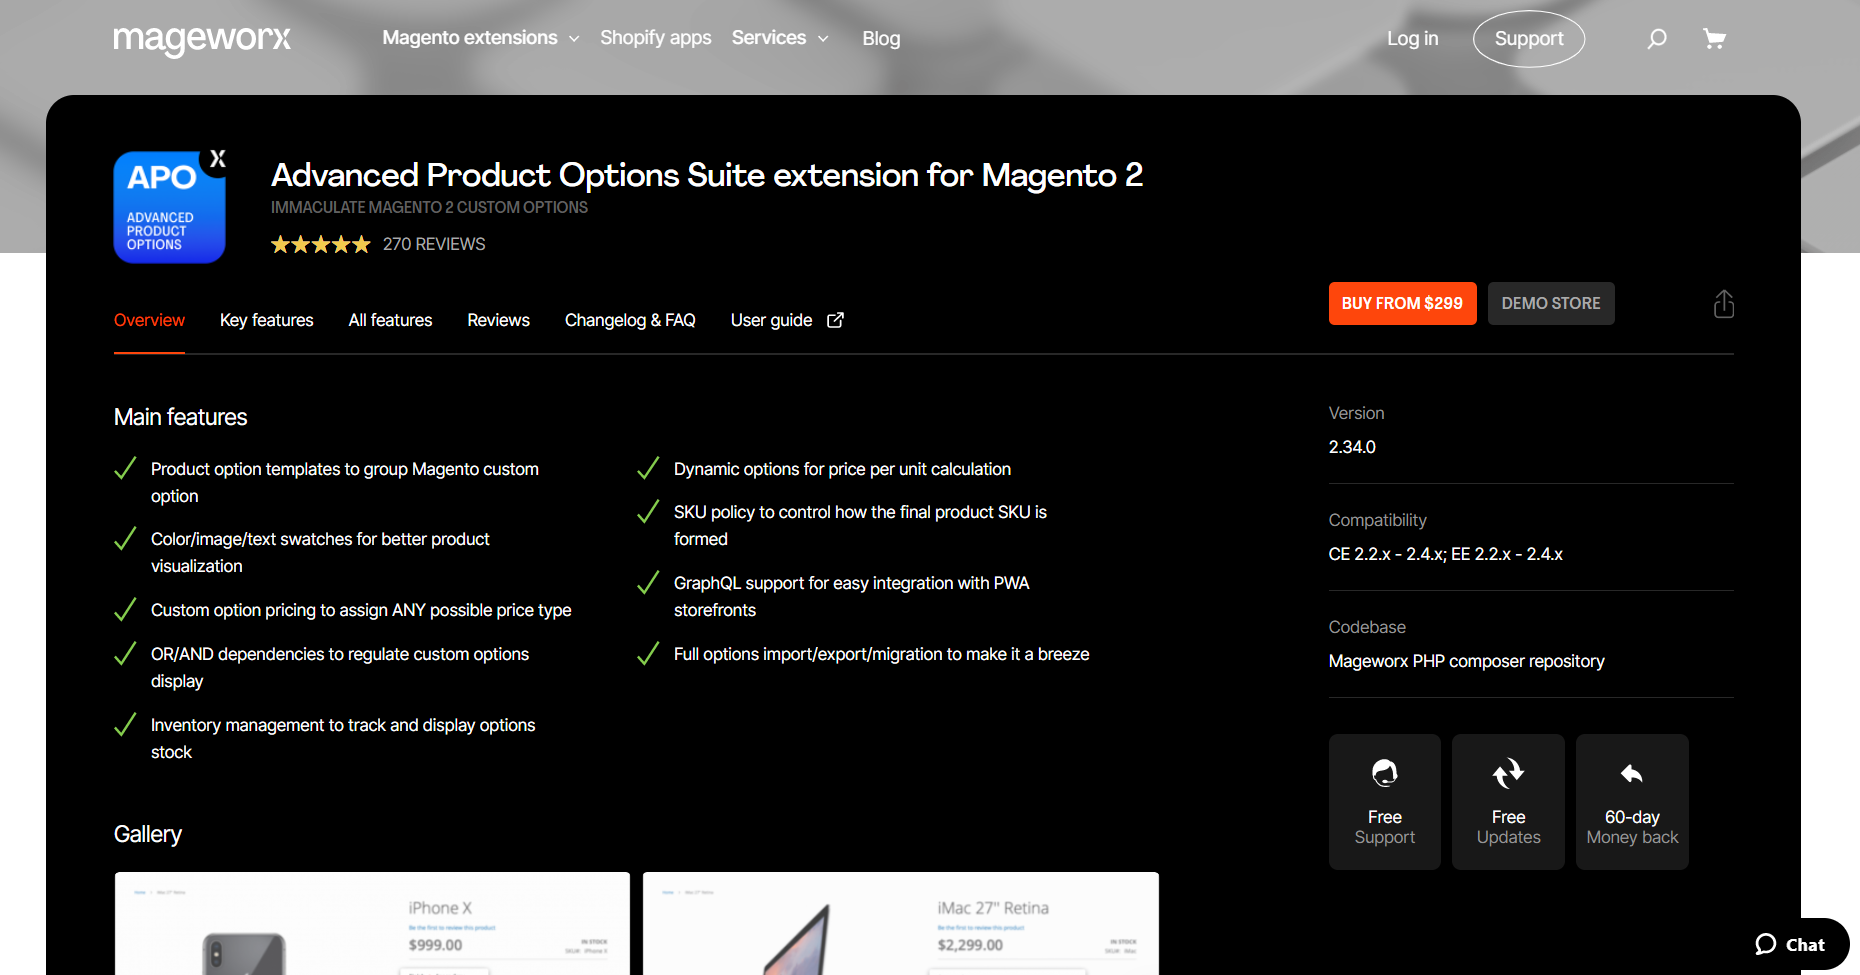 best magento extensions - Mageworx Advanced Product Options